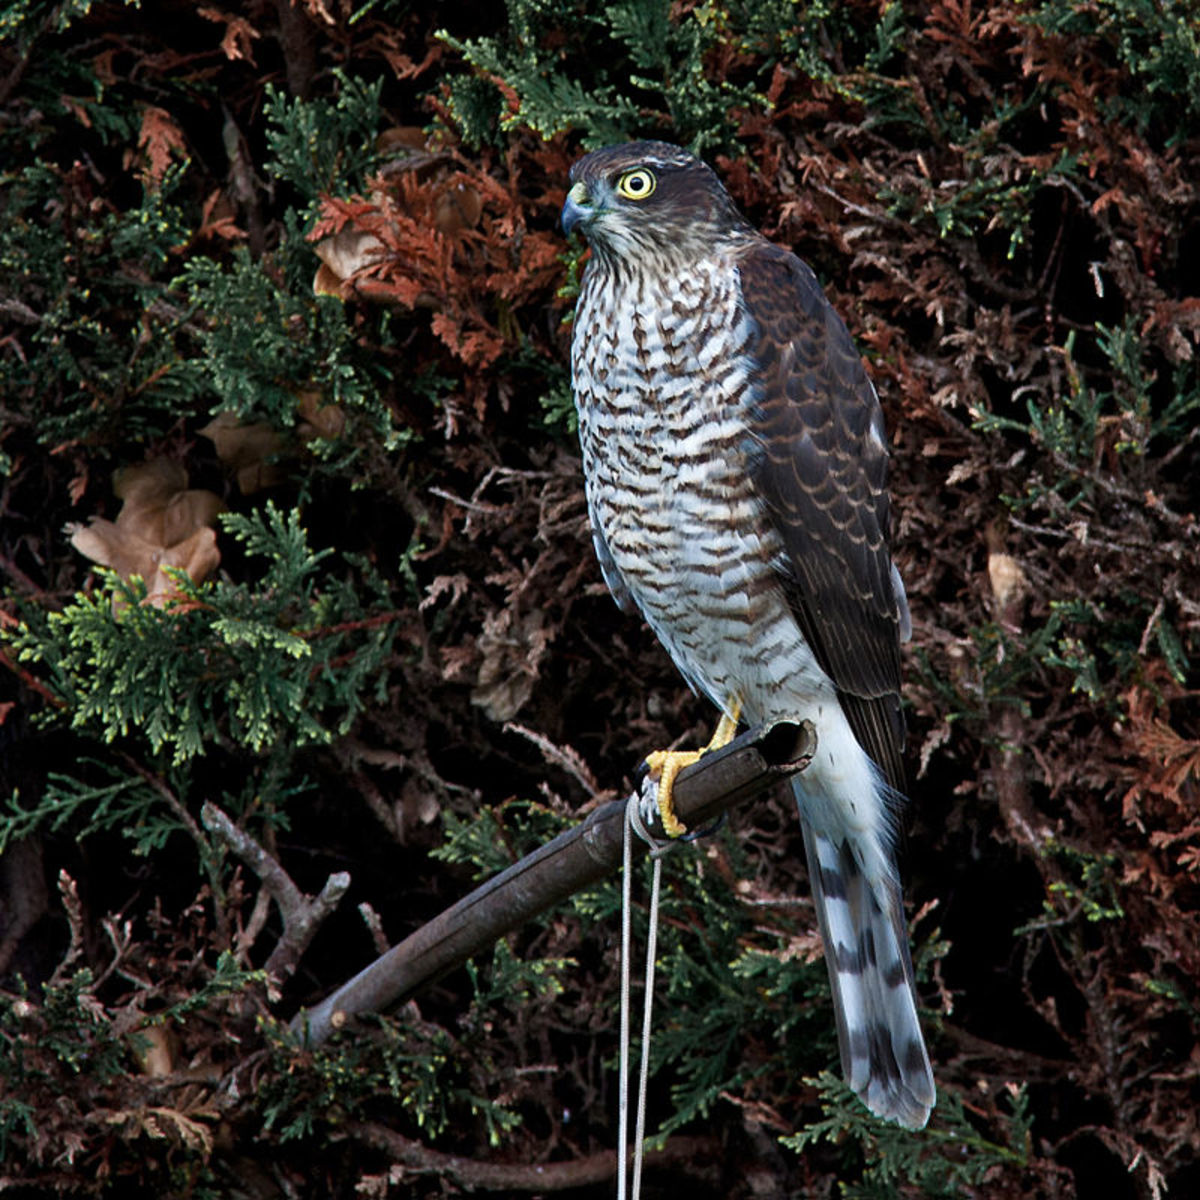 Sparrowhawks are a hazard but are also the sign of a healthy garden ecosystem as their presence signifies a good number of available prey.